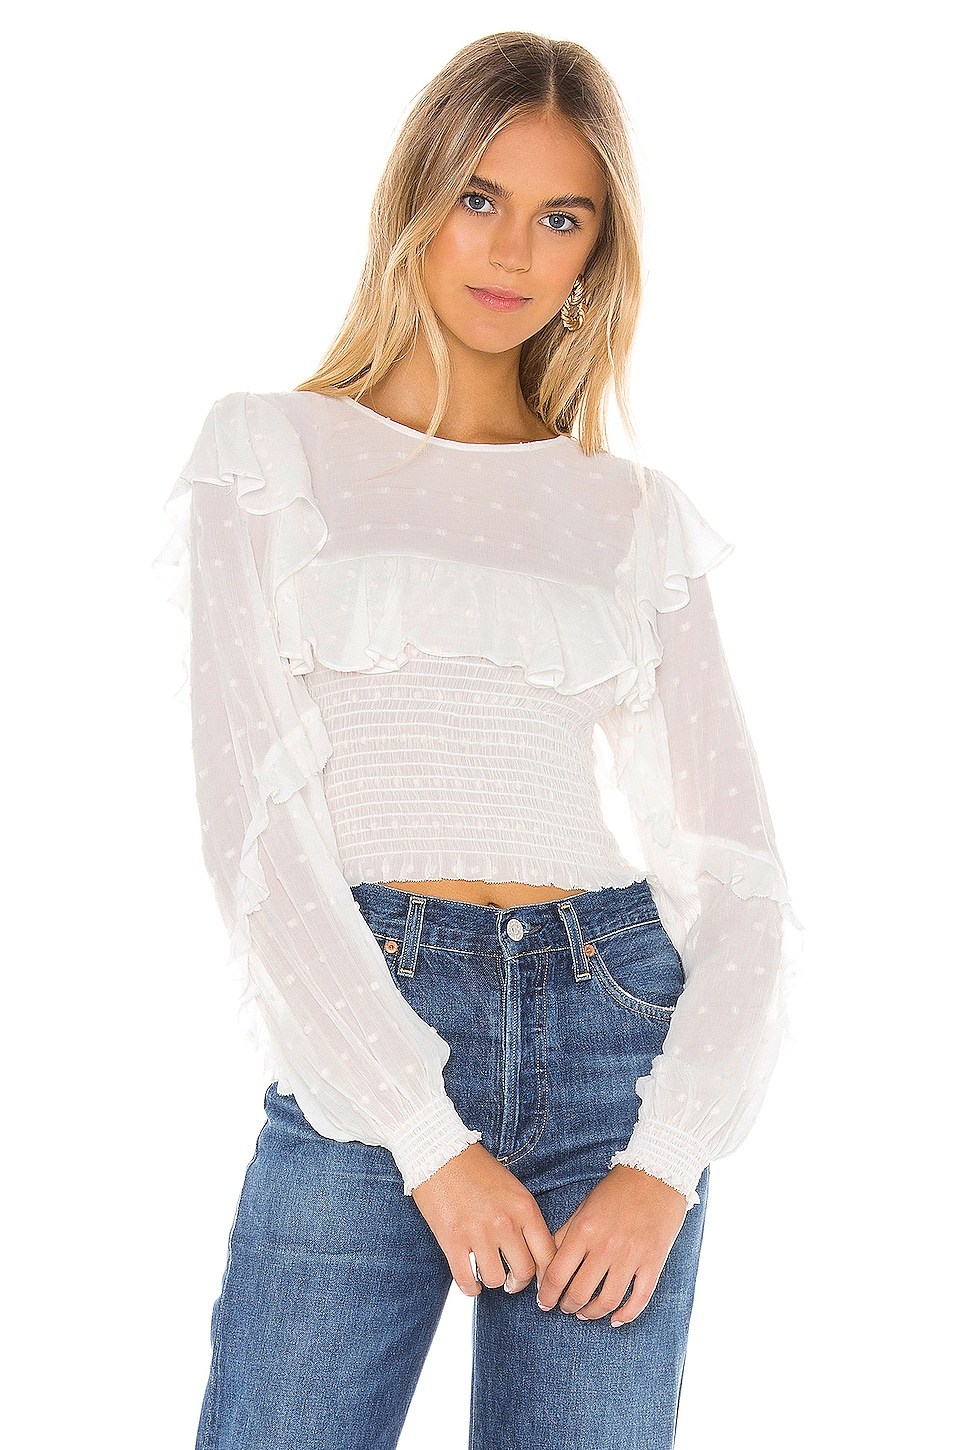 Blue Life Victoria Top in Swiss Dot Ivory